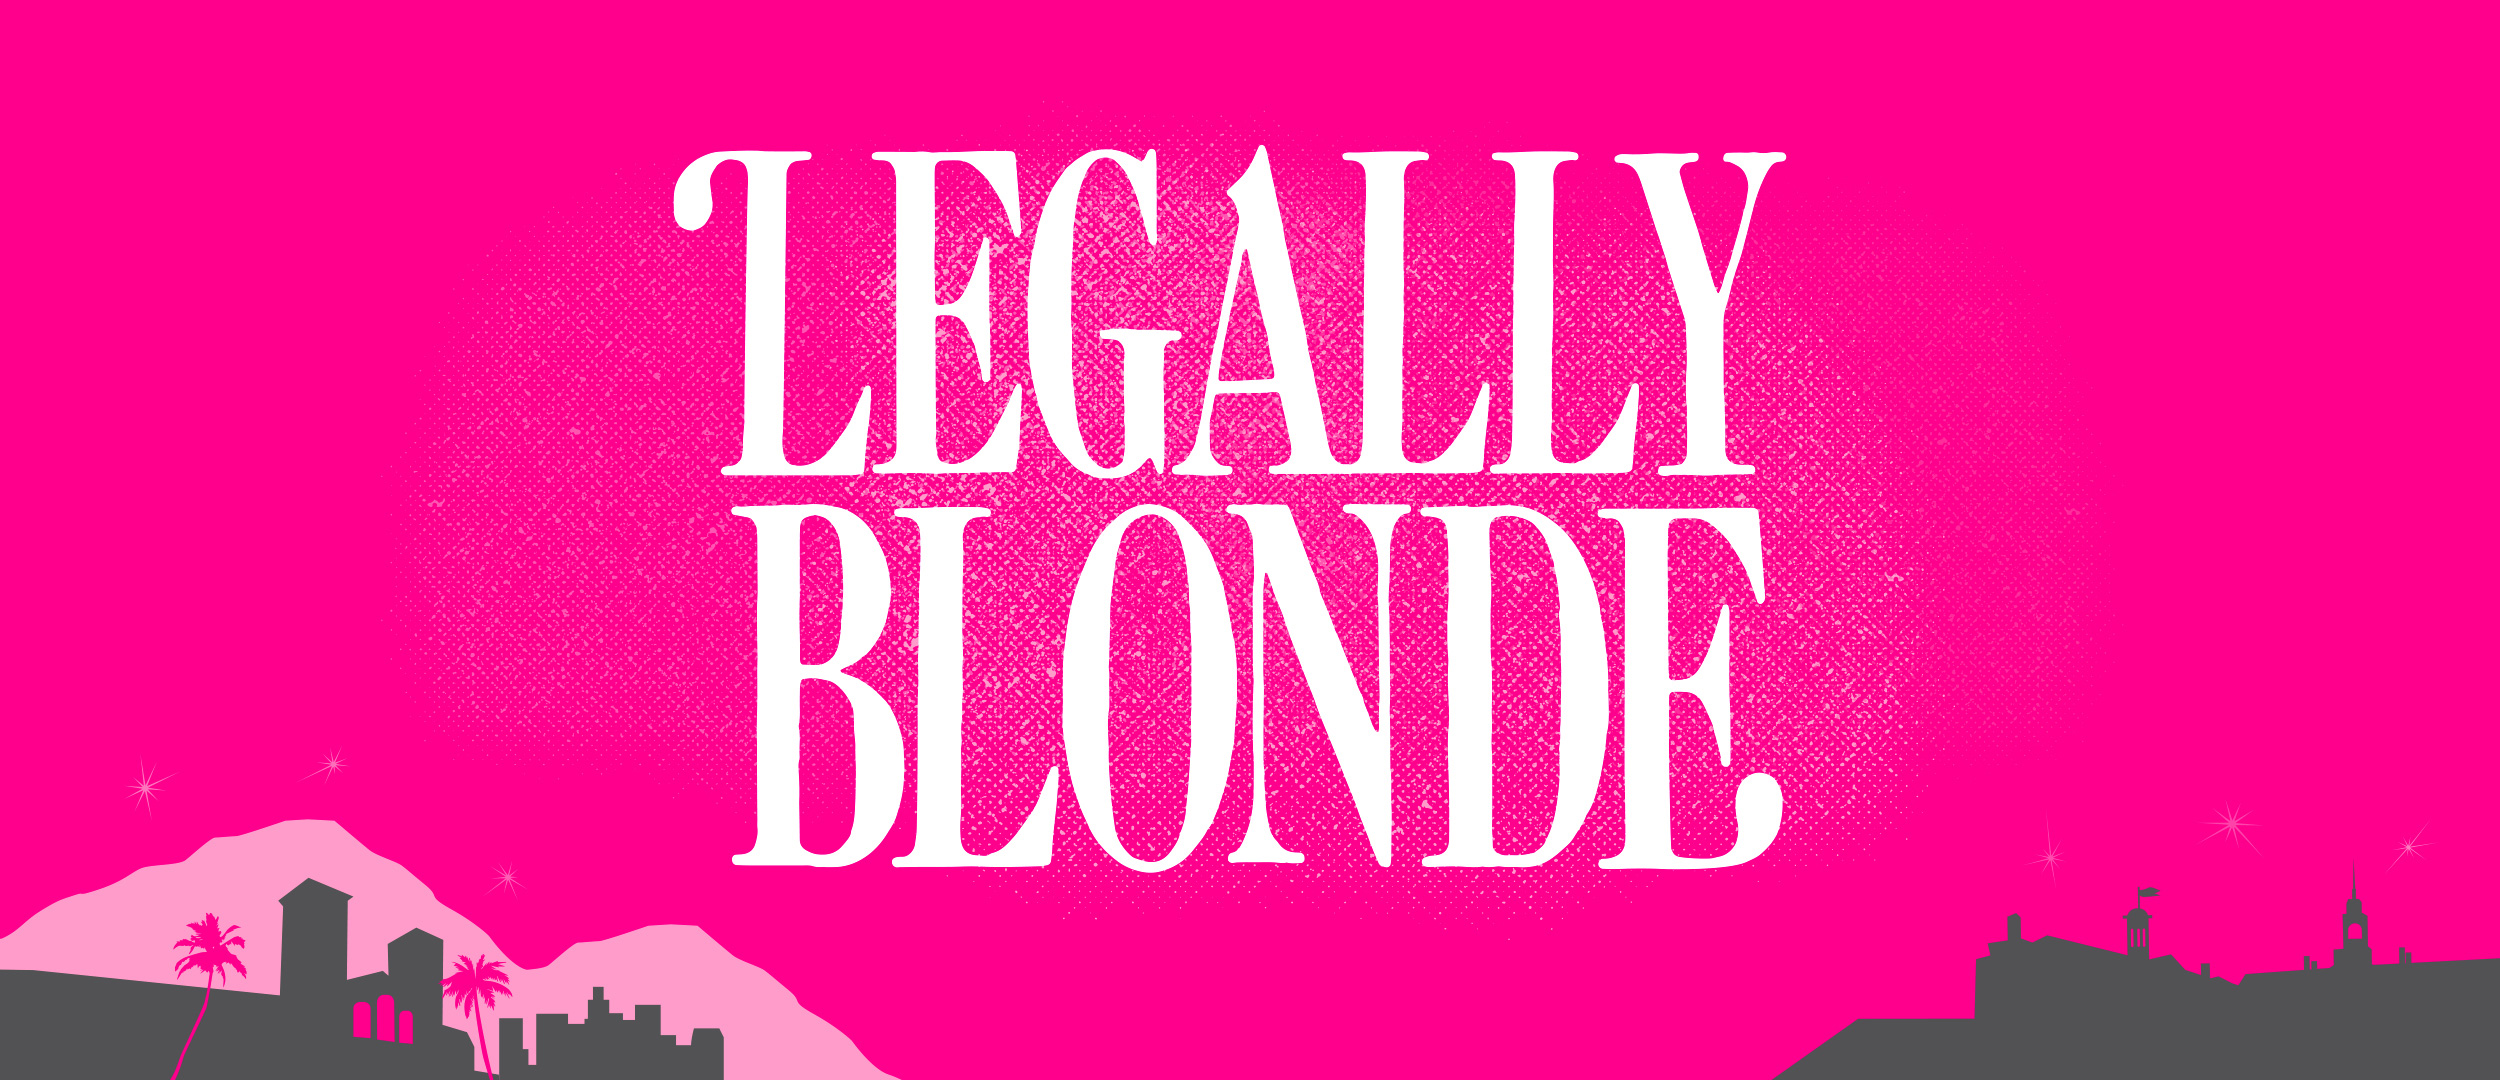 Legally Blond Show Package Projected Backdrop for Legally Blonde